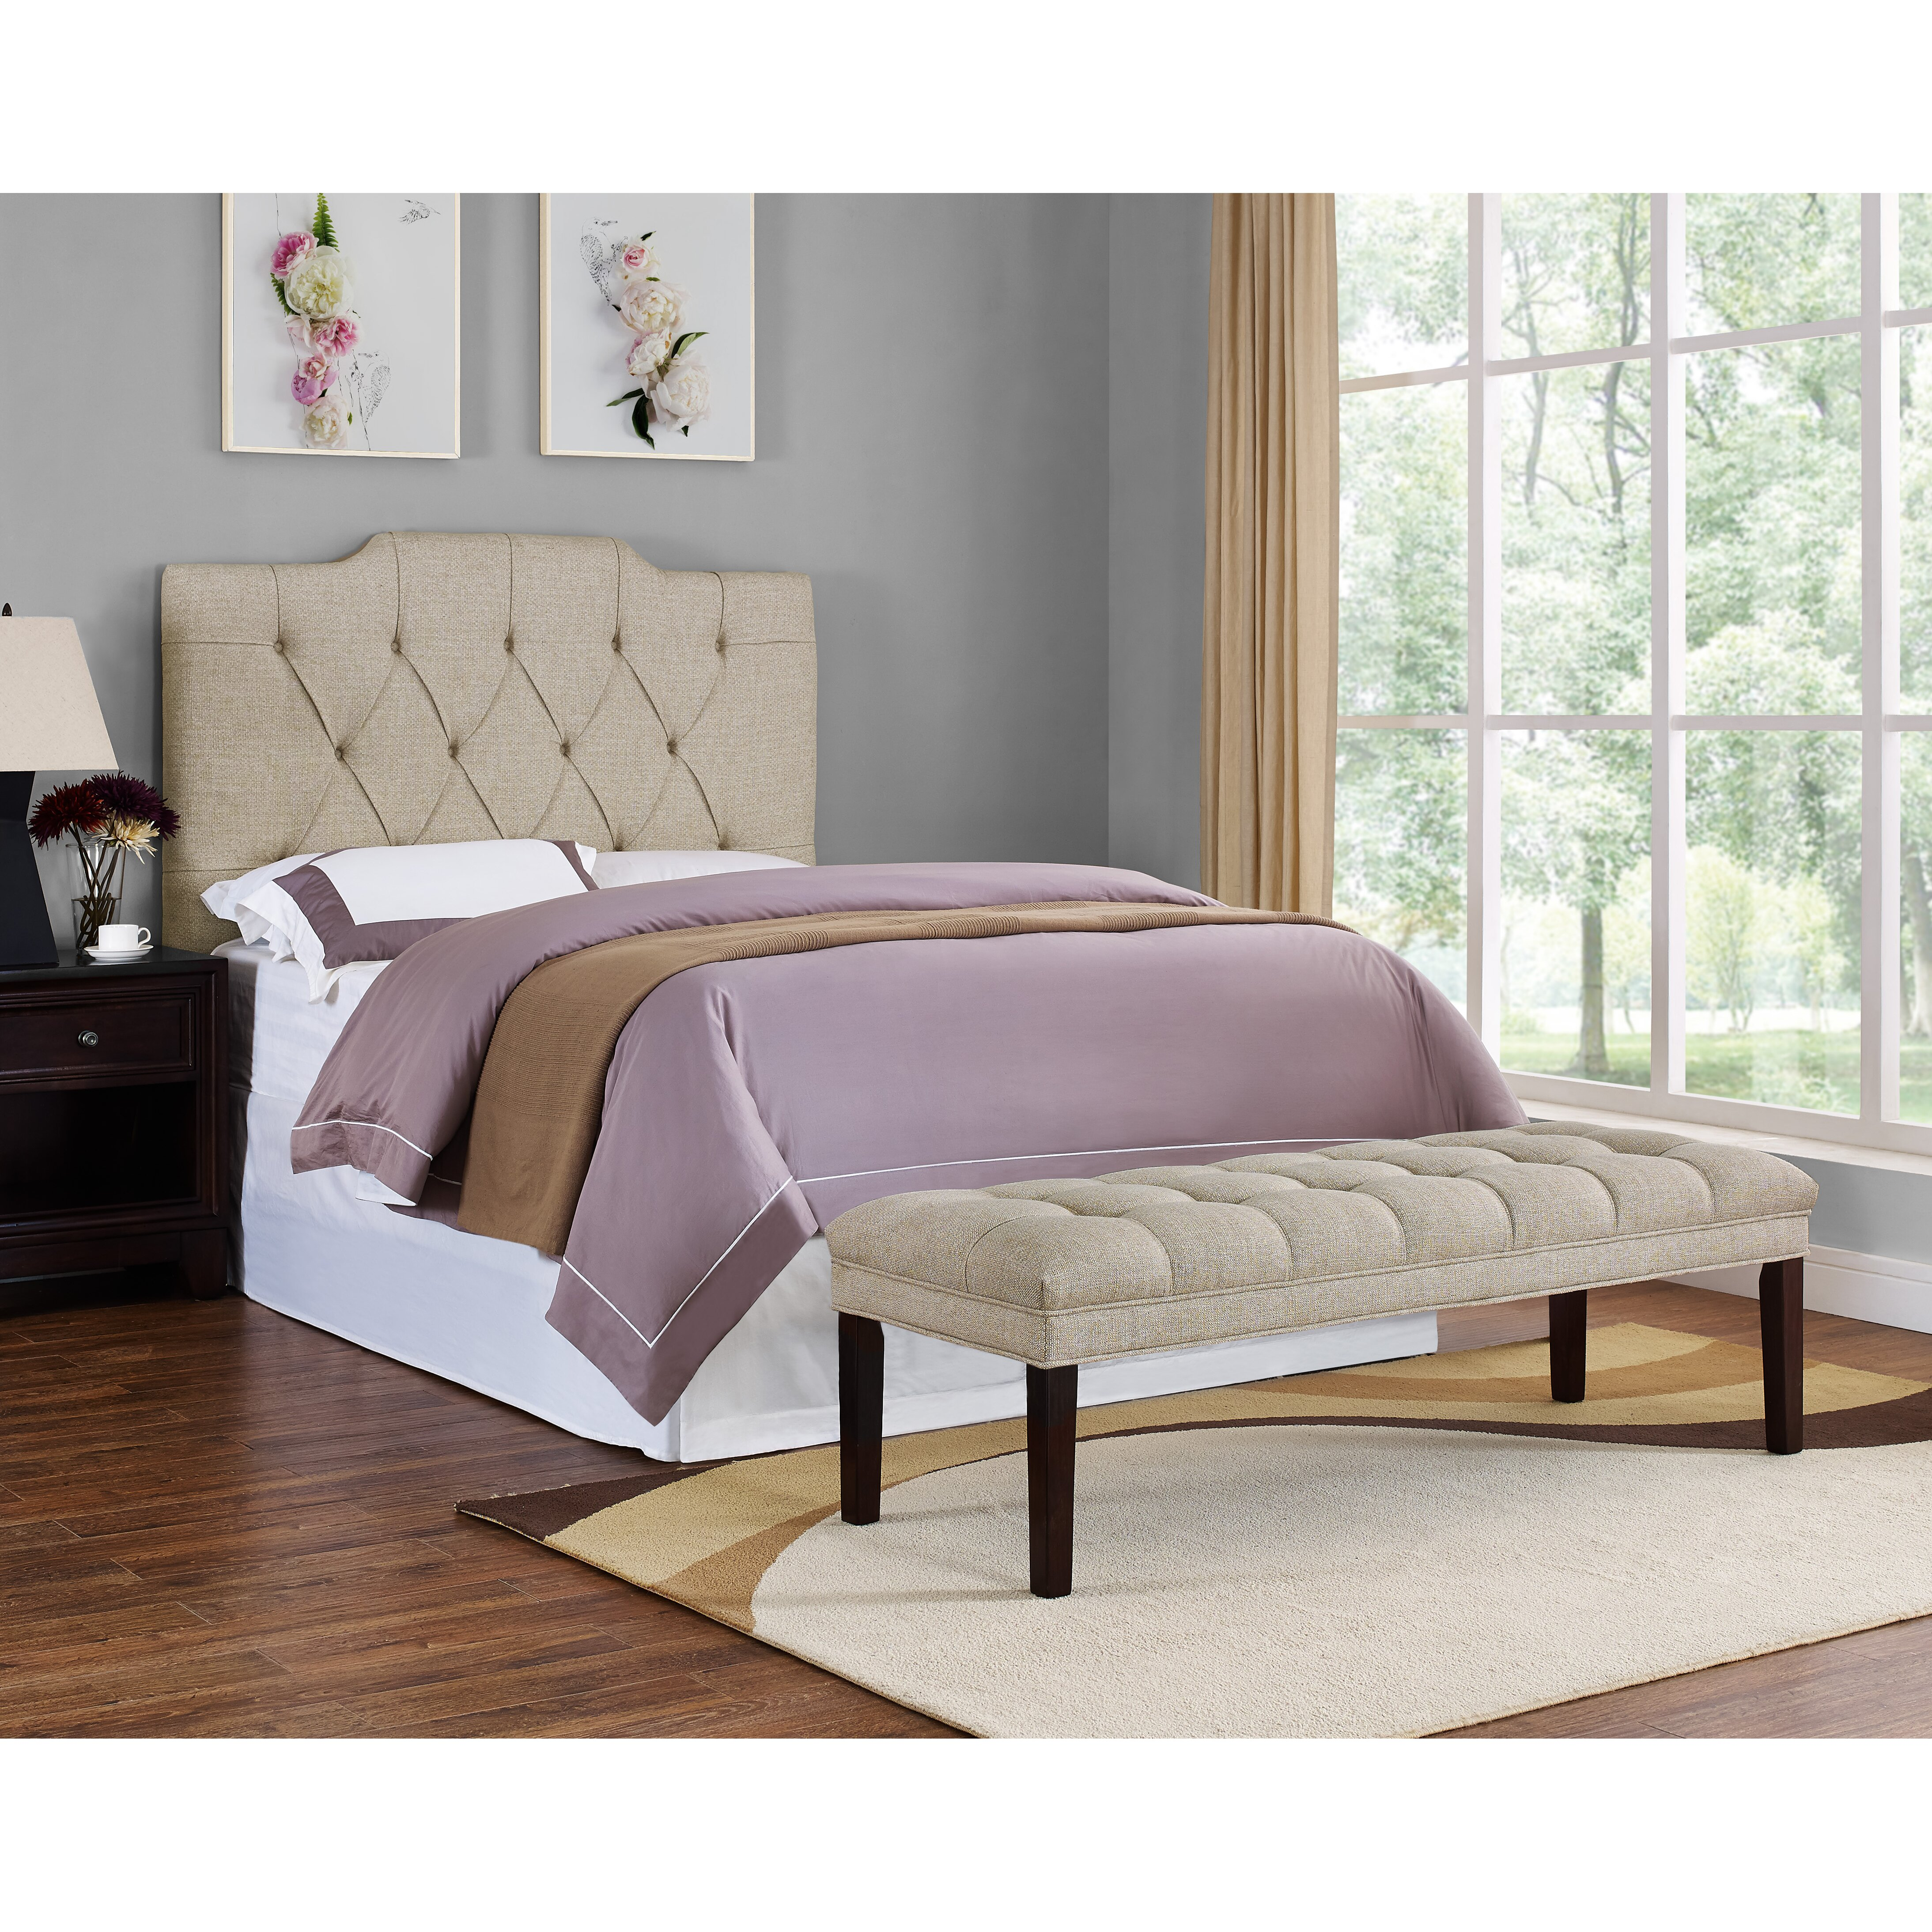 Pri Upholstered Tufted Bedroom Bench Reviews Wayfair